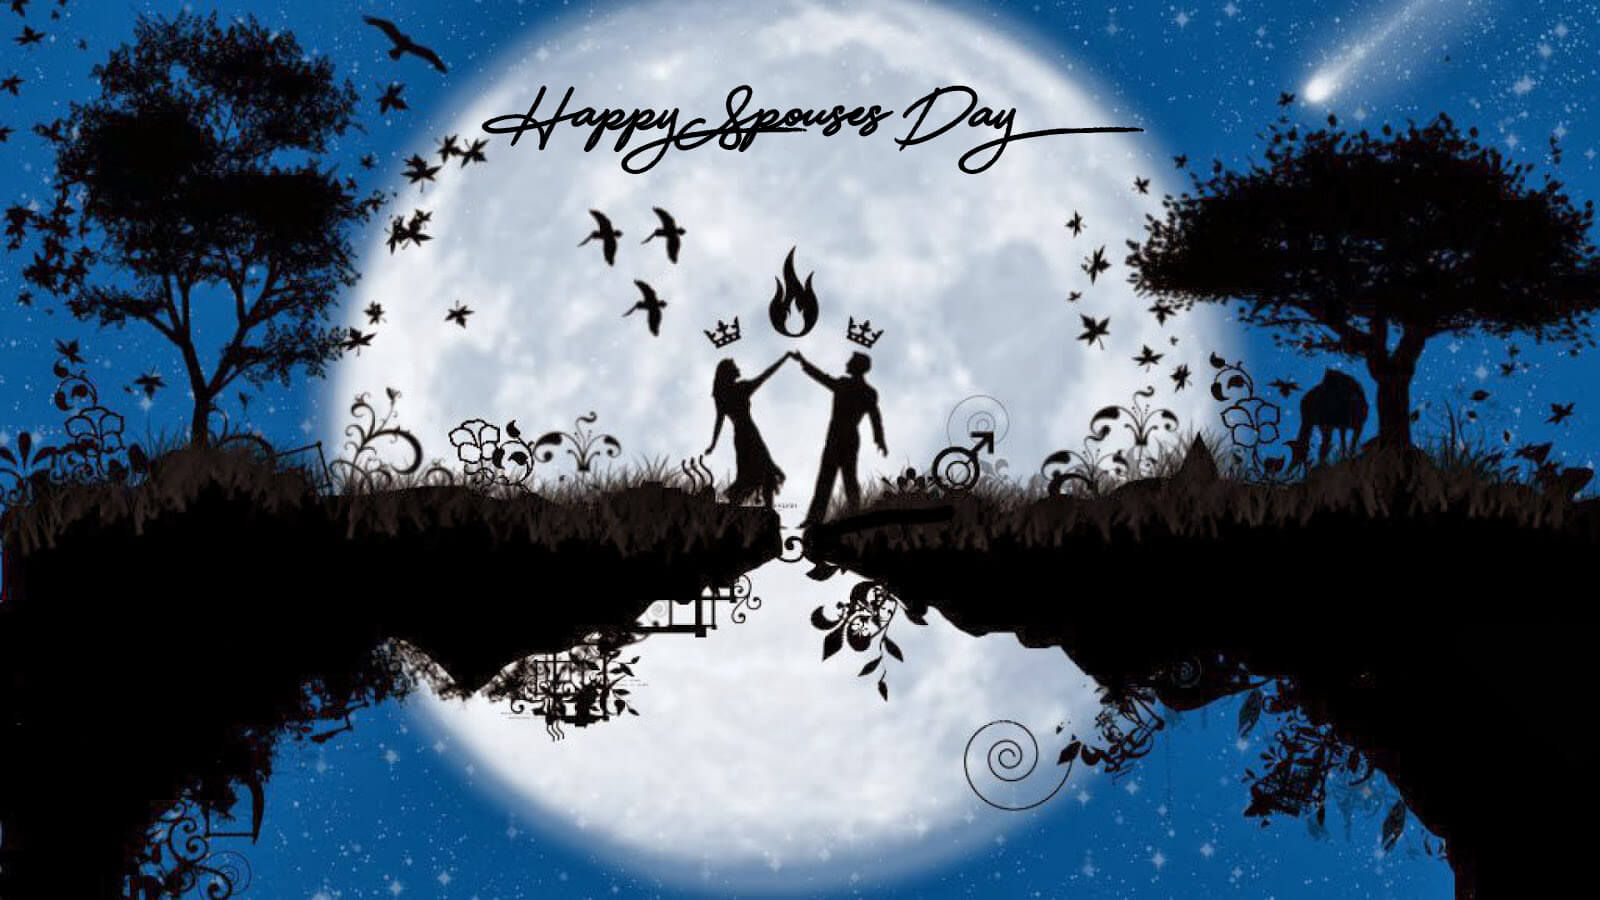 happy spouses day wishes greetings romantic moon dance hd wallpaper